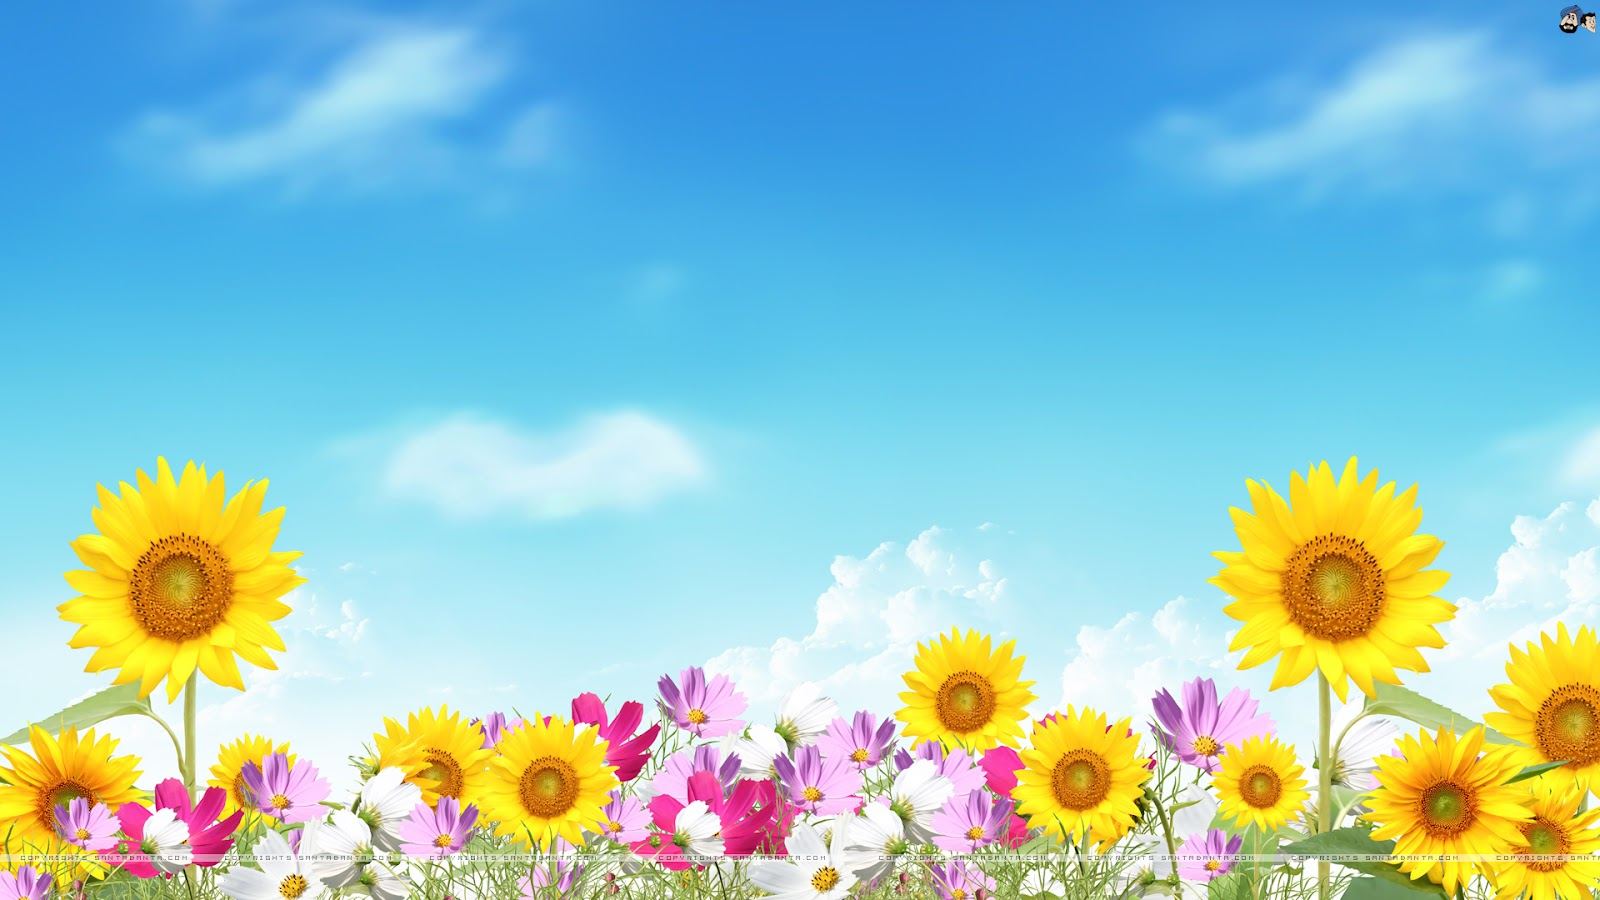 Kids Under 7 Summer Wallpapers for Desktop 1600x900